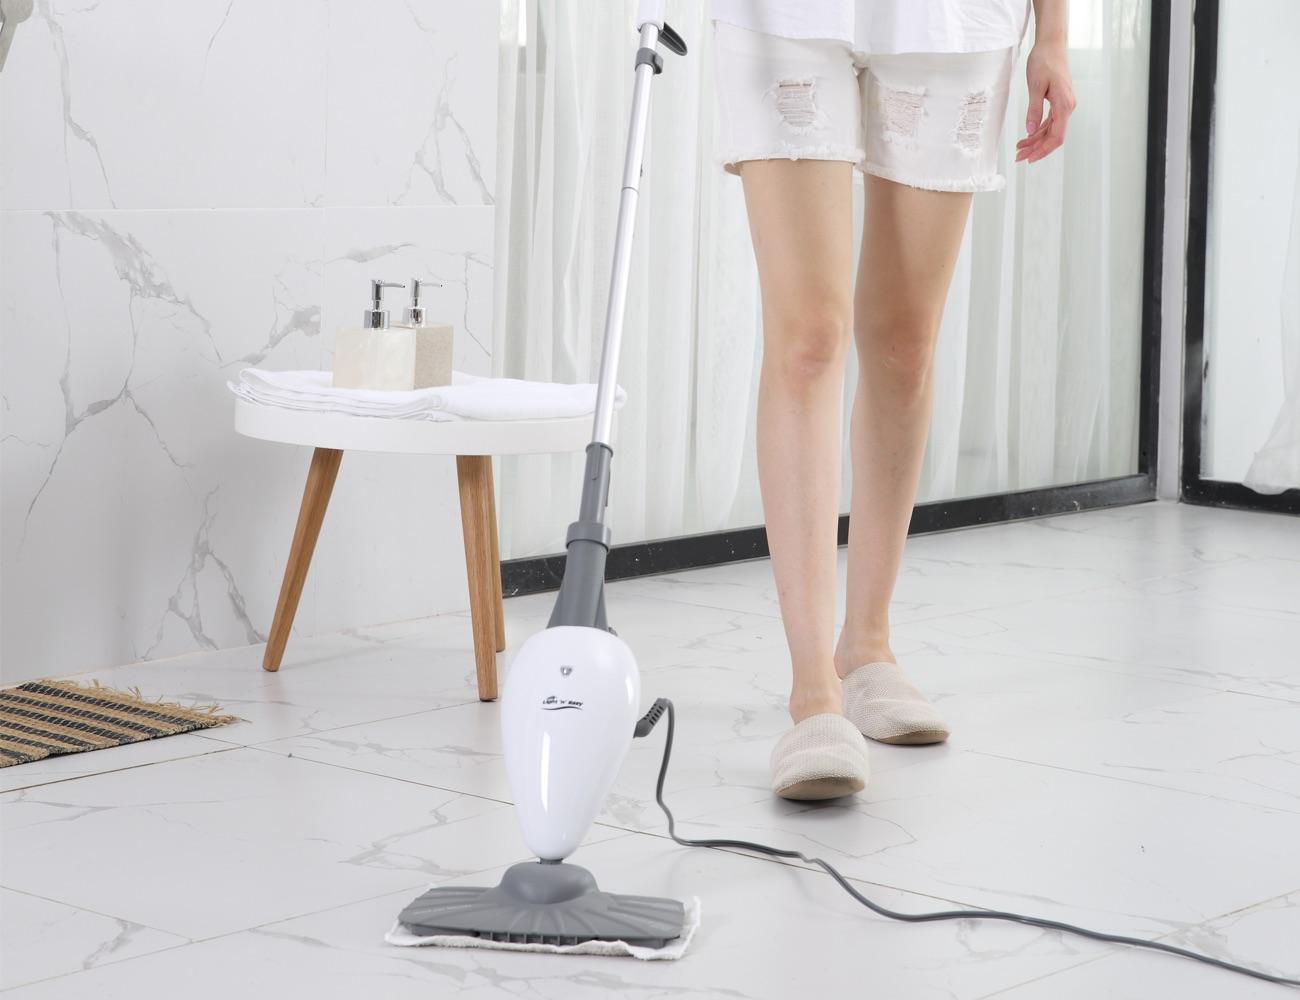 Light 'n' Easy Sanitizing Steam Mop